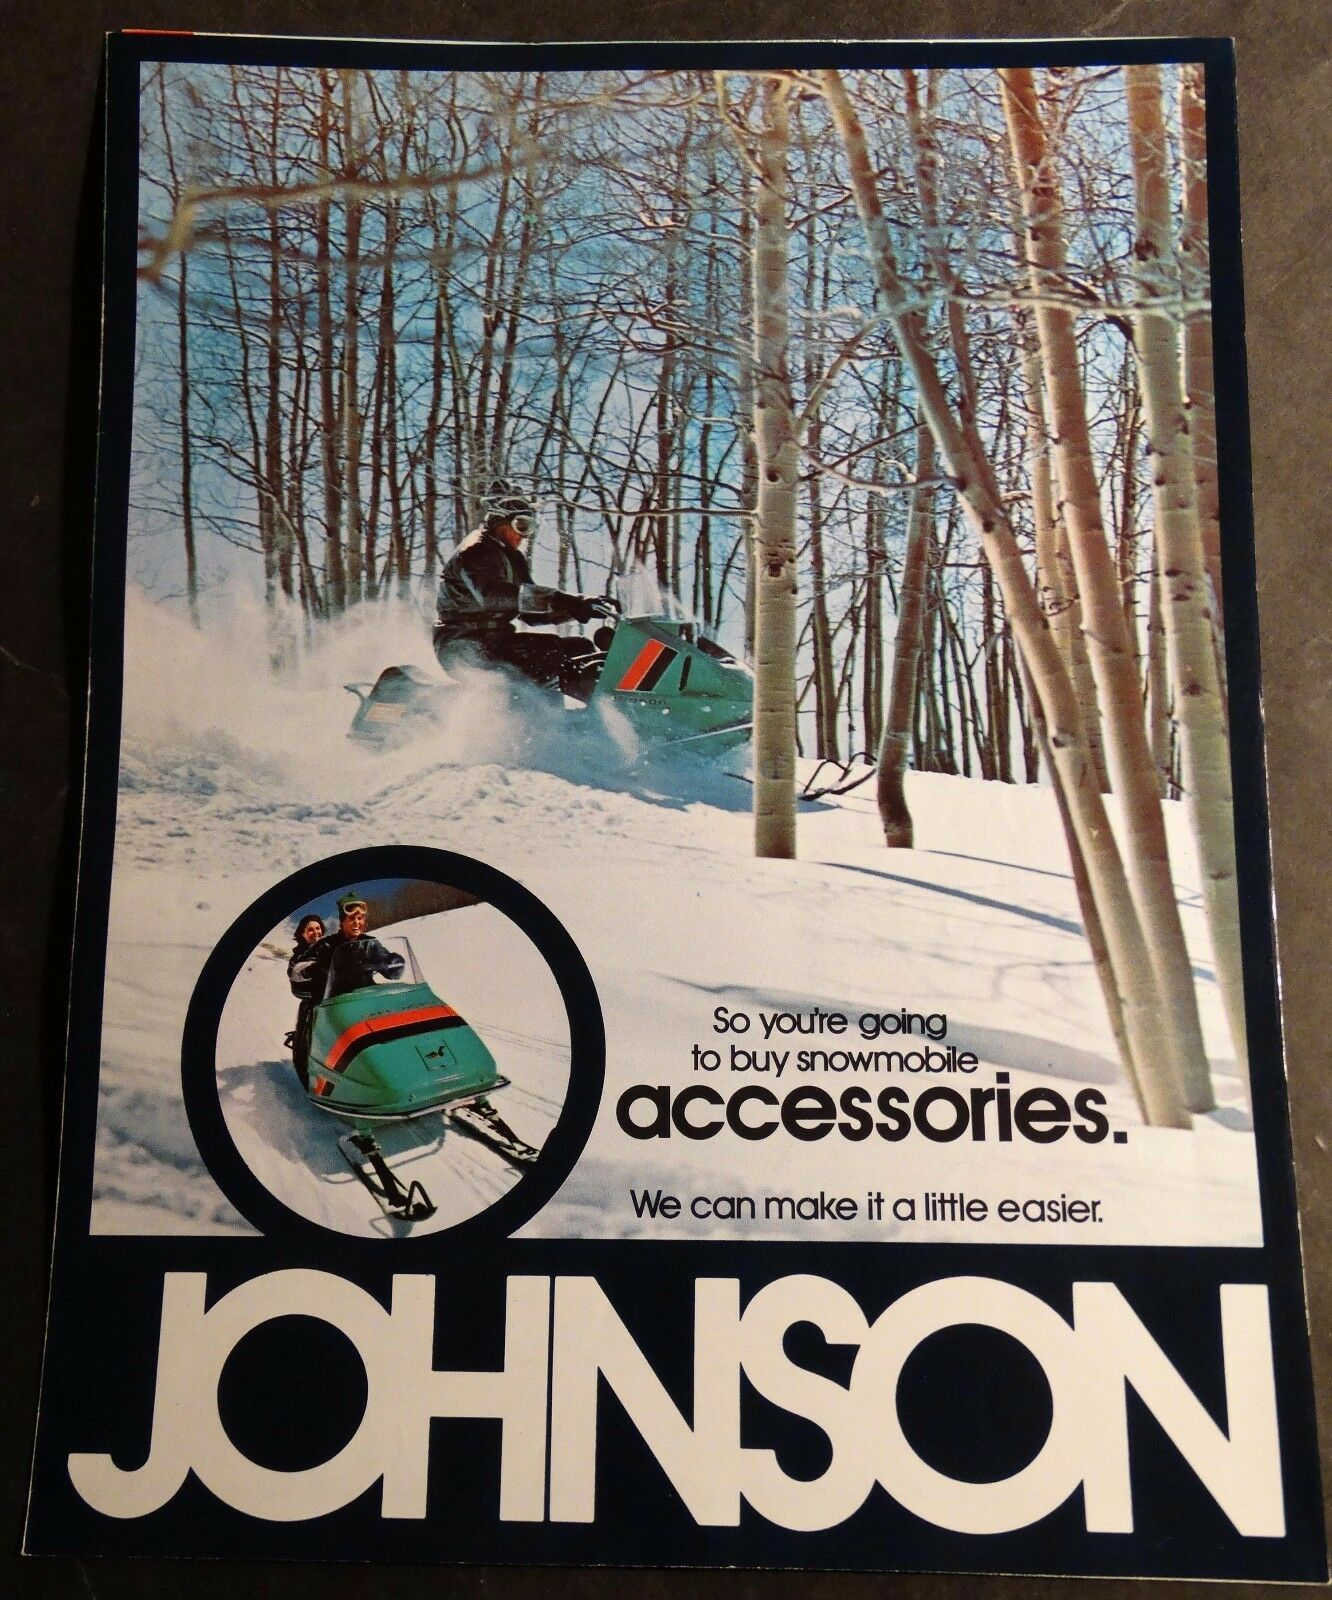 1972 JOHNSON SNOWMOBILE ACCESSORIES SALES BROCHURE 6 PAGES  (885)